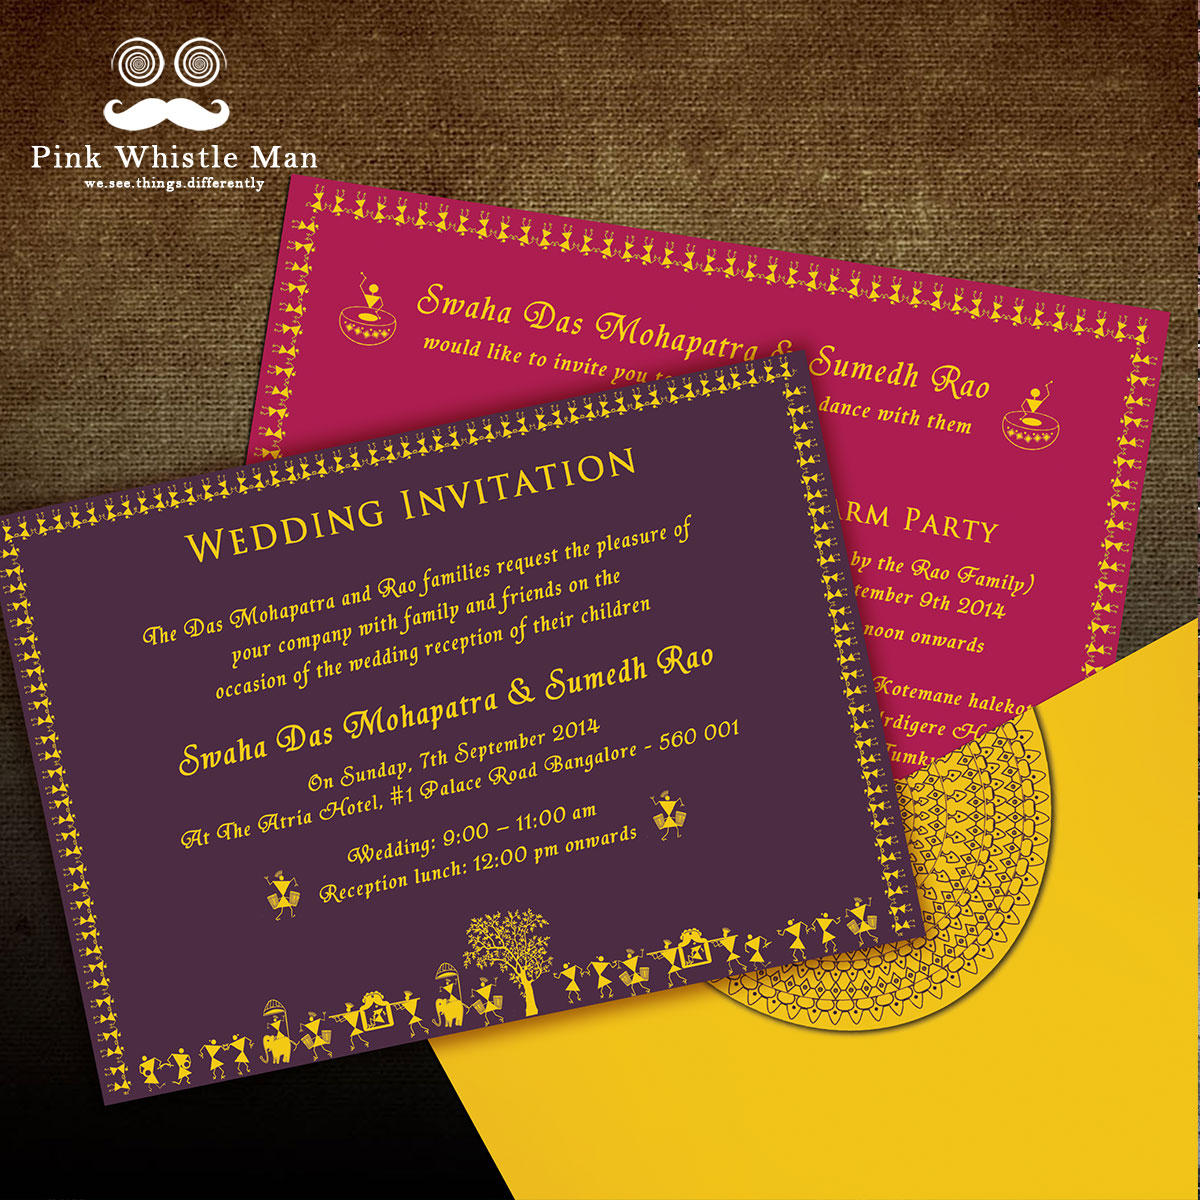 Warli Invites - Pink Whistle Man